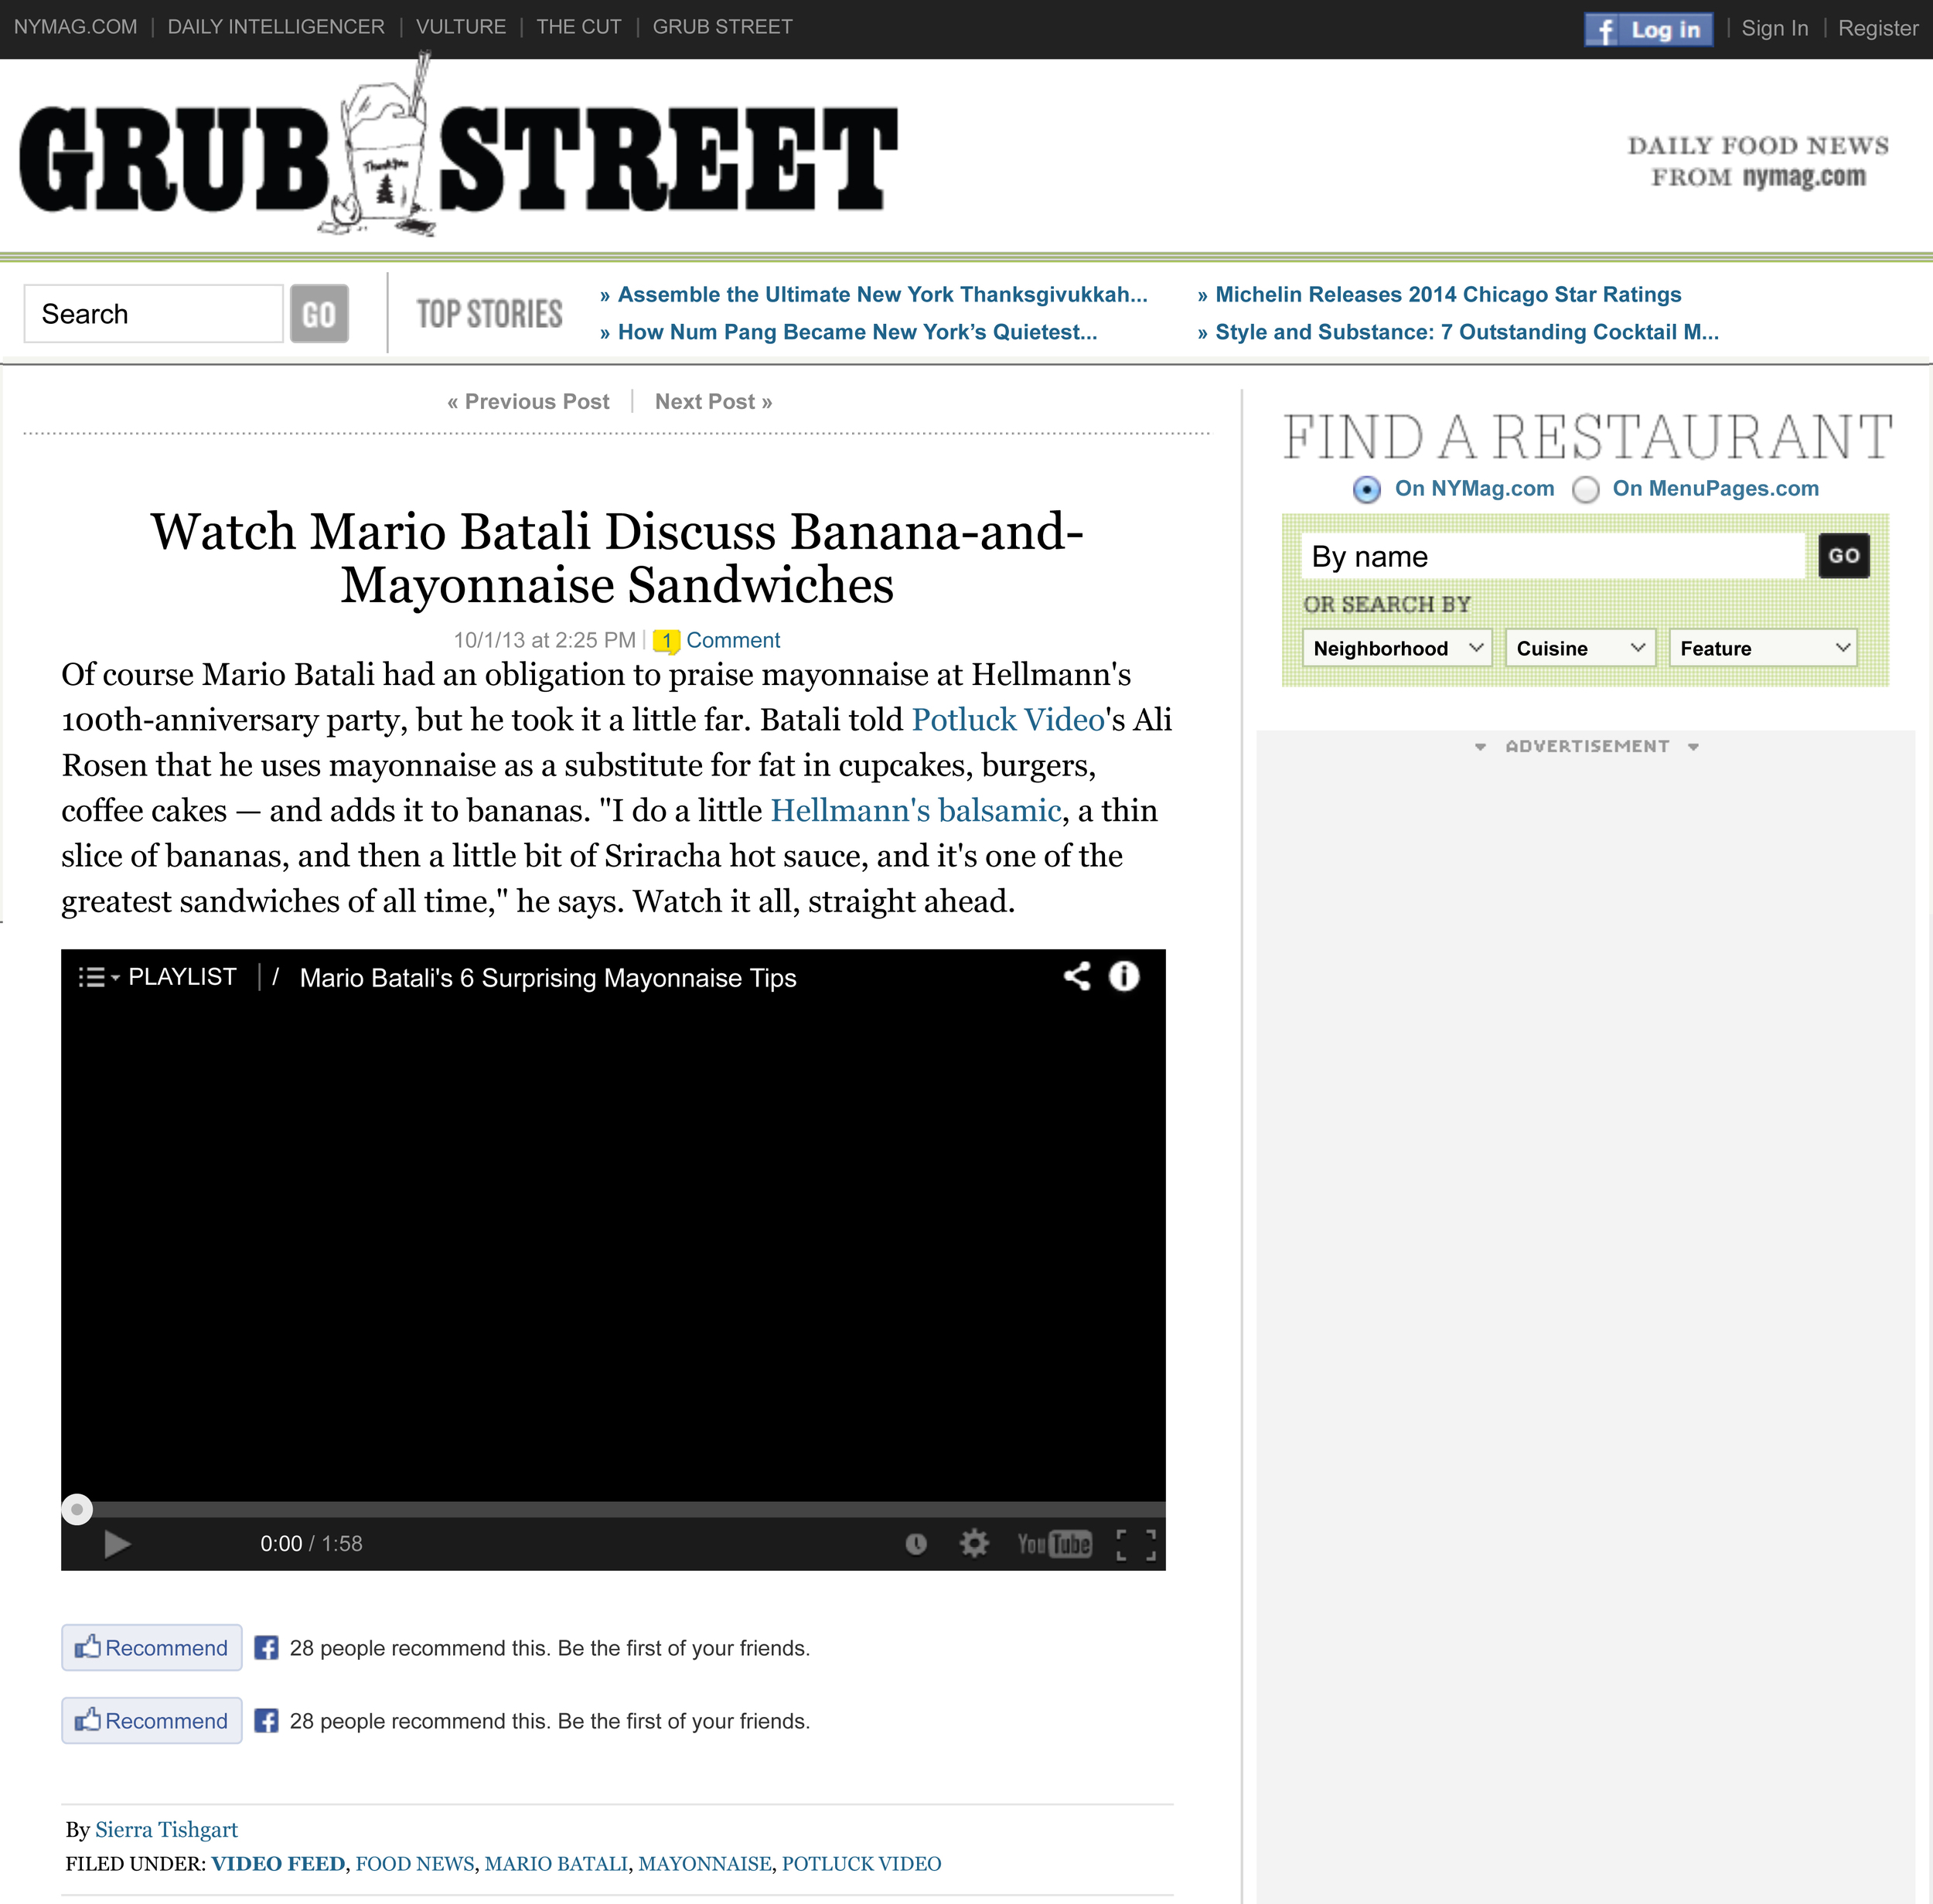 grub-st-Watch-Mario-Batali-Discuss-Banana-and-Mayonnaise-Sandwiches----Grub-Street-New-York-1.jpg